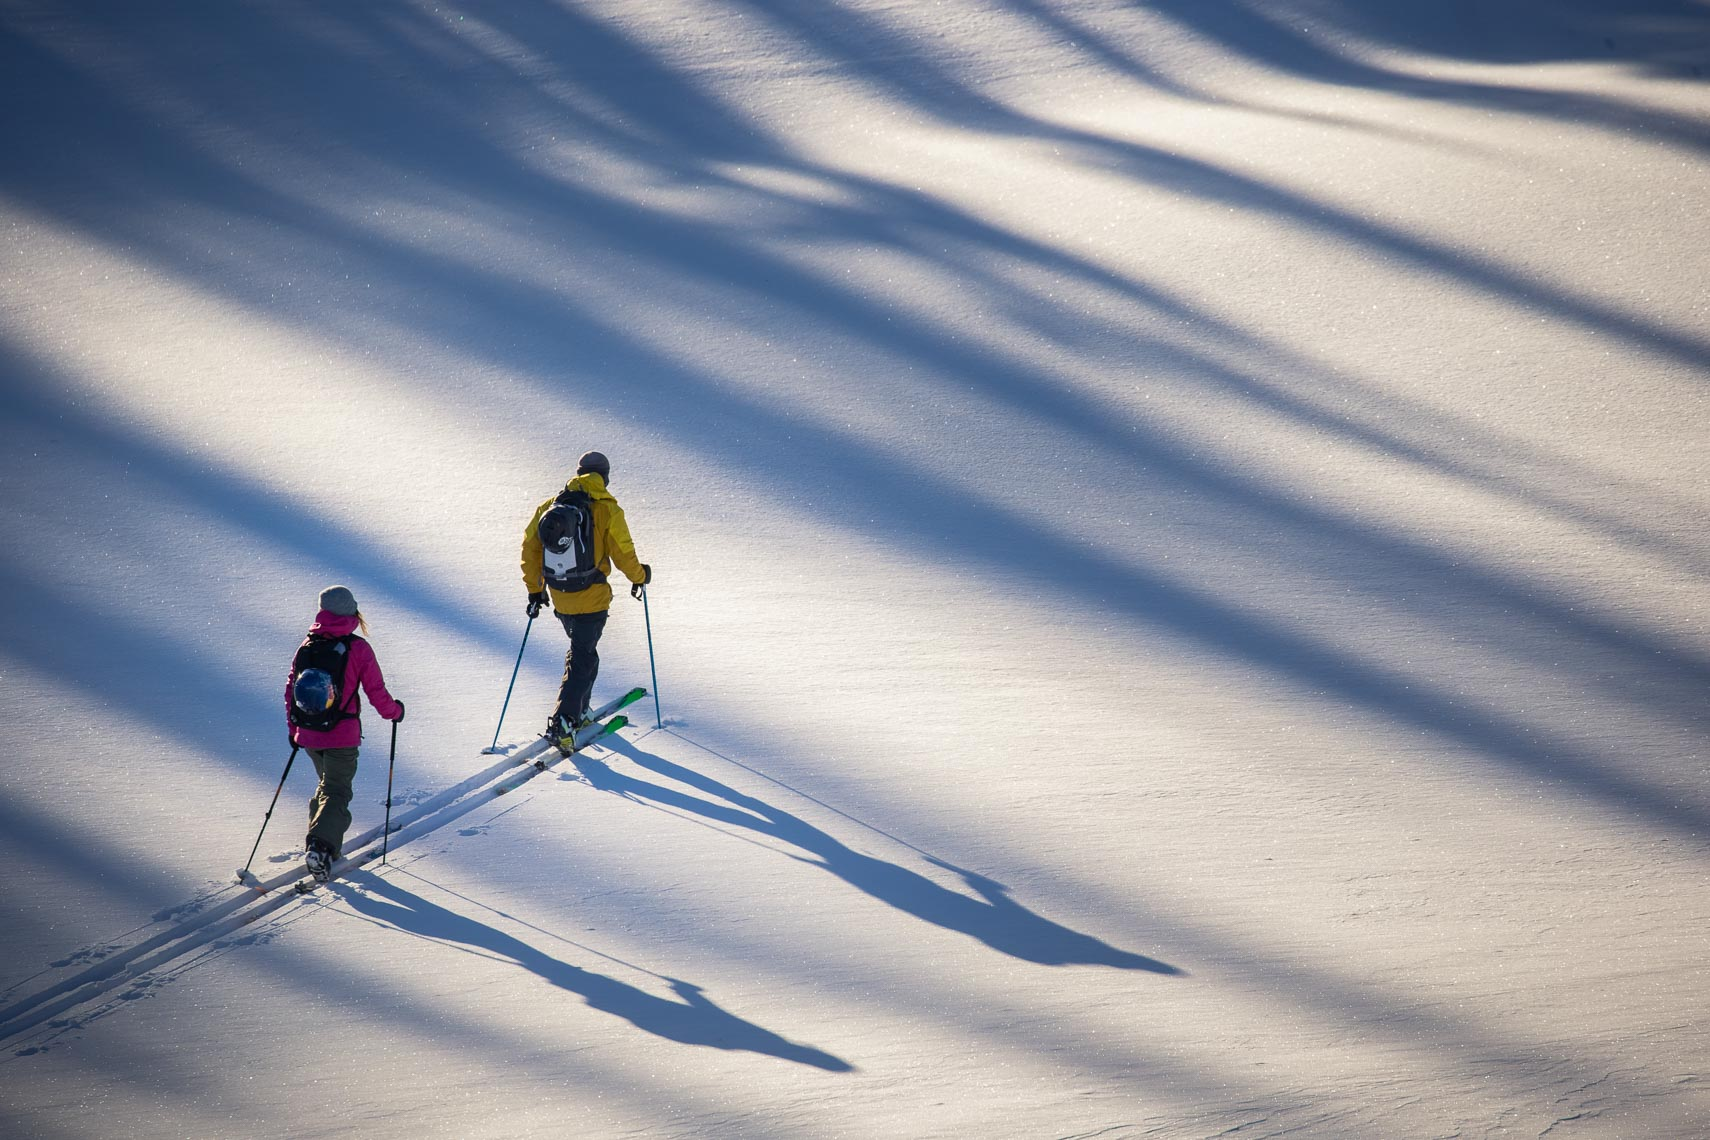 Ski touring in the snow with long shadows in interior british columbia